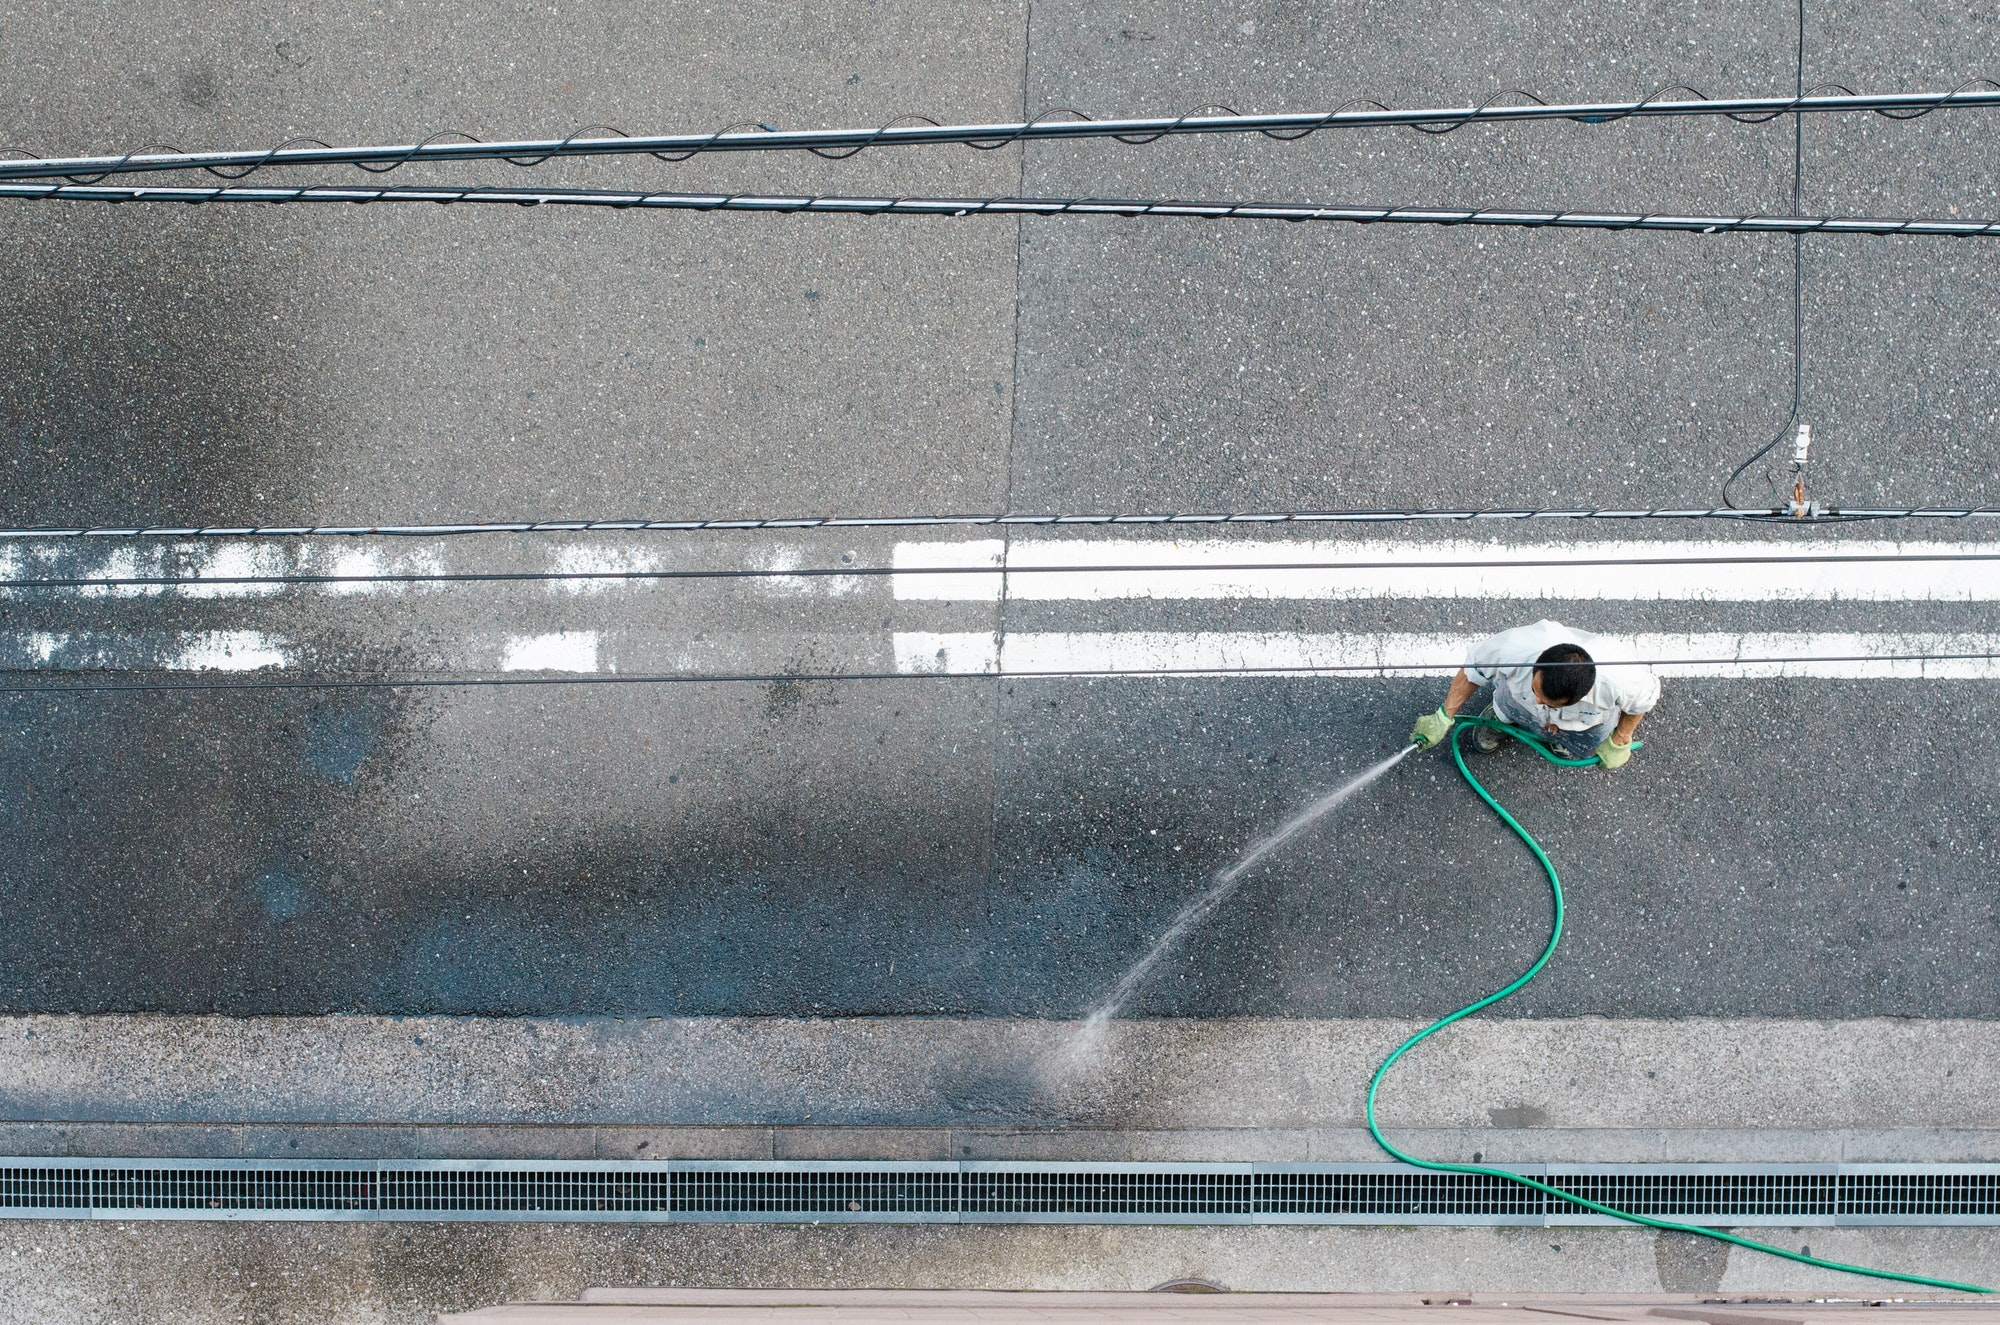 A maintenance worker cleaning the street outside an apartment building with a hose.